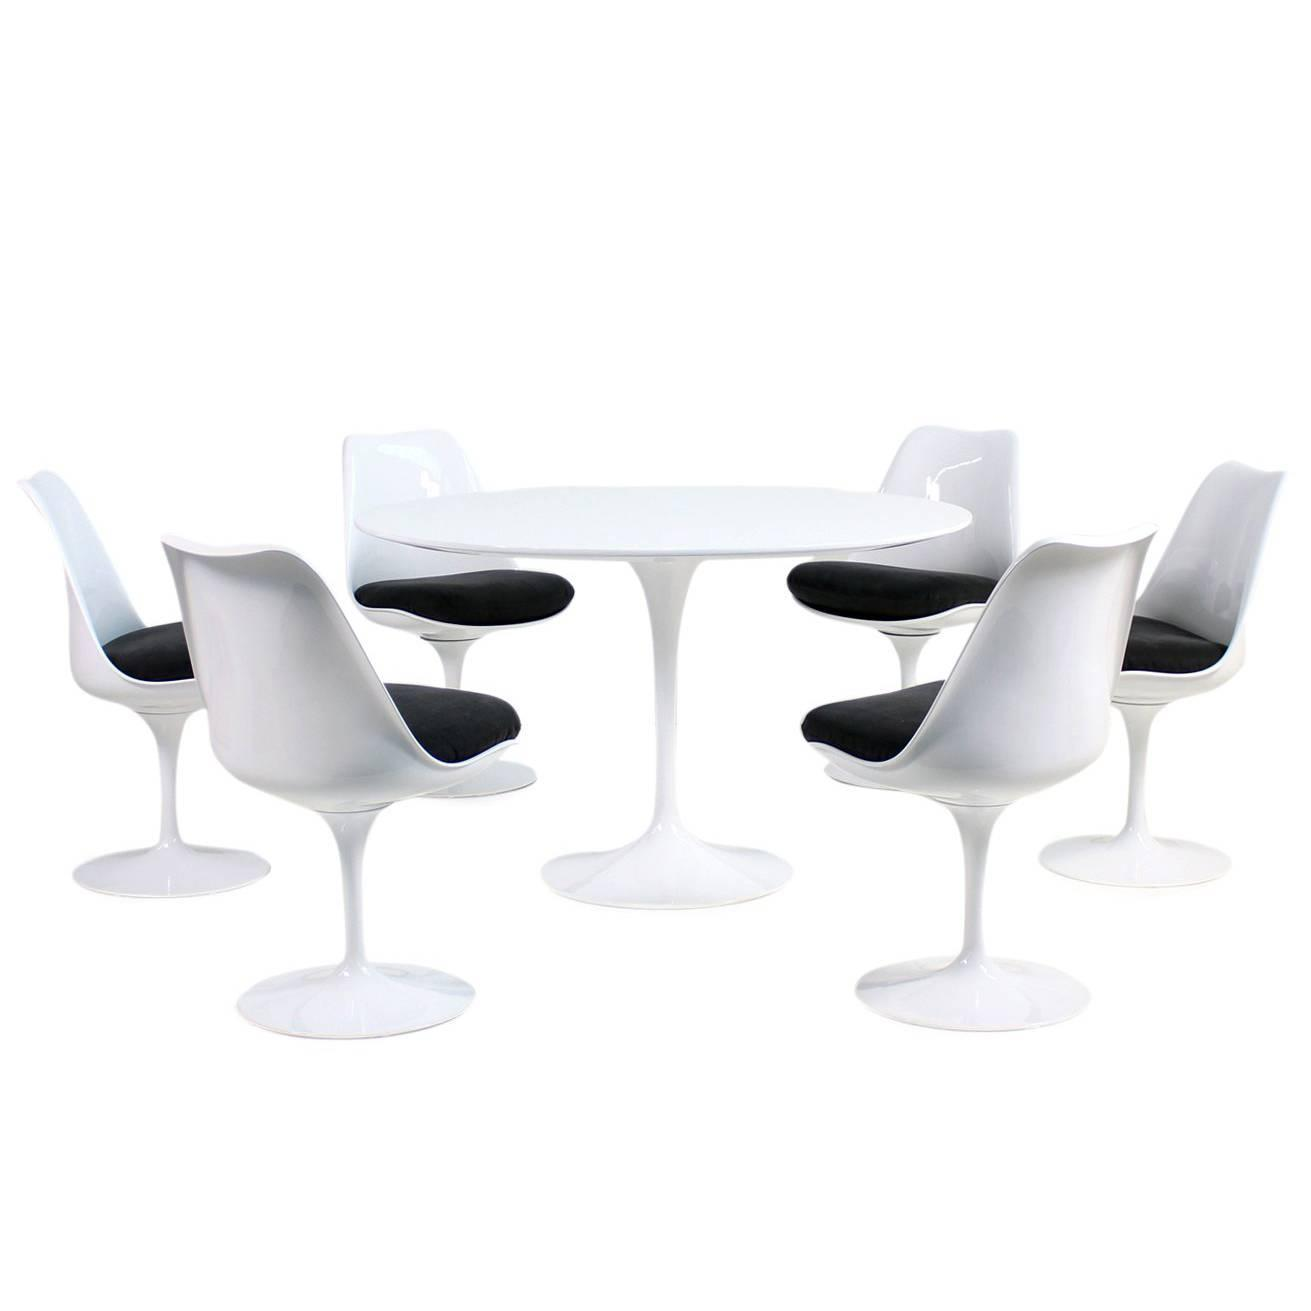 S Eero Saarinen Tulip Dining Table And Six Swivel Chairs Knoll - Original saarinen tulip table